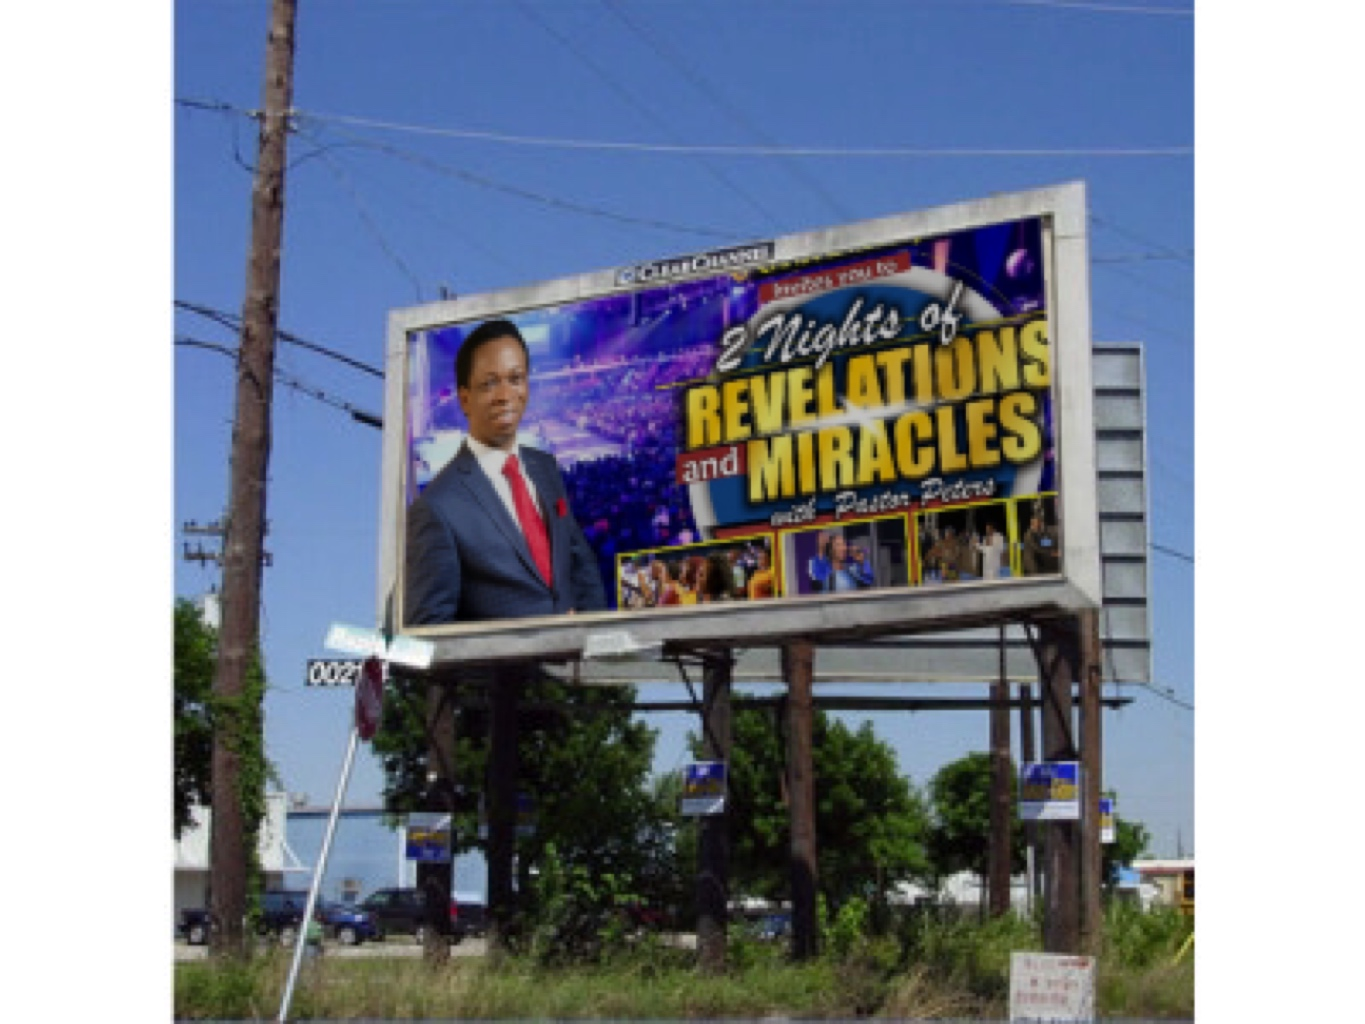 Nights of Revelations and Miracles.